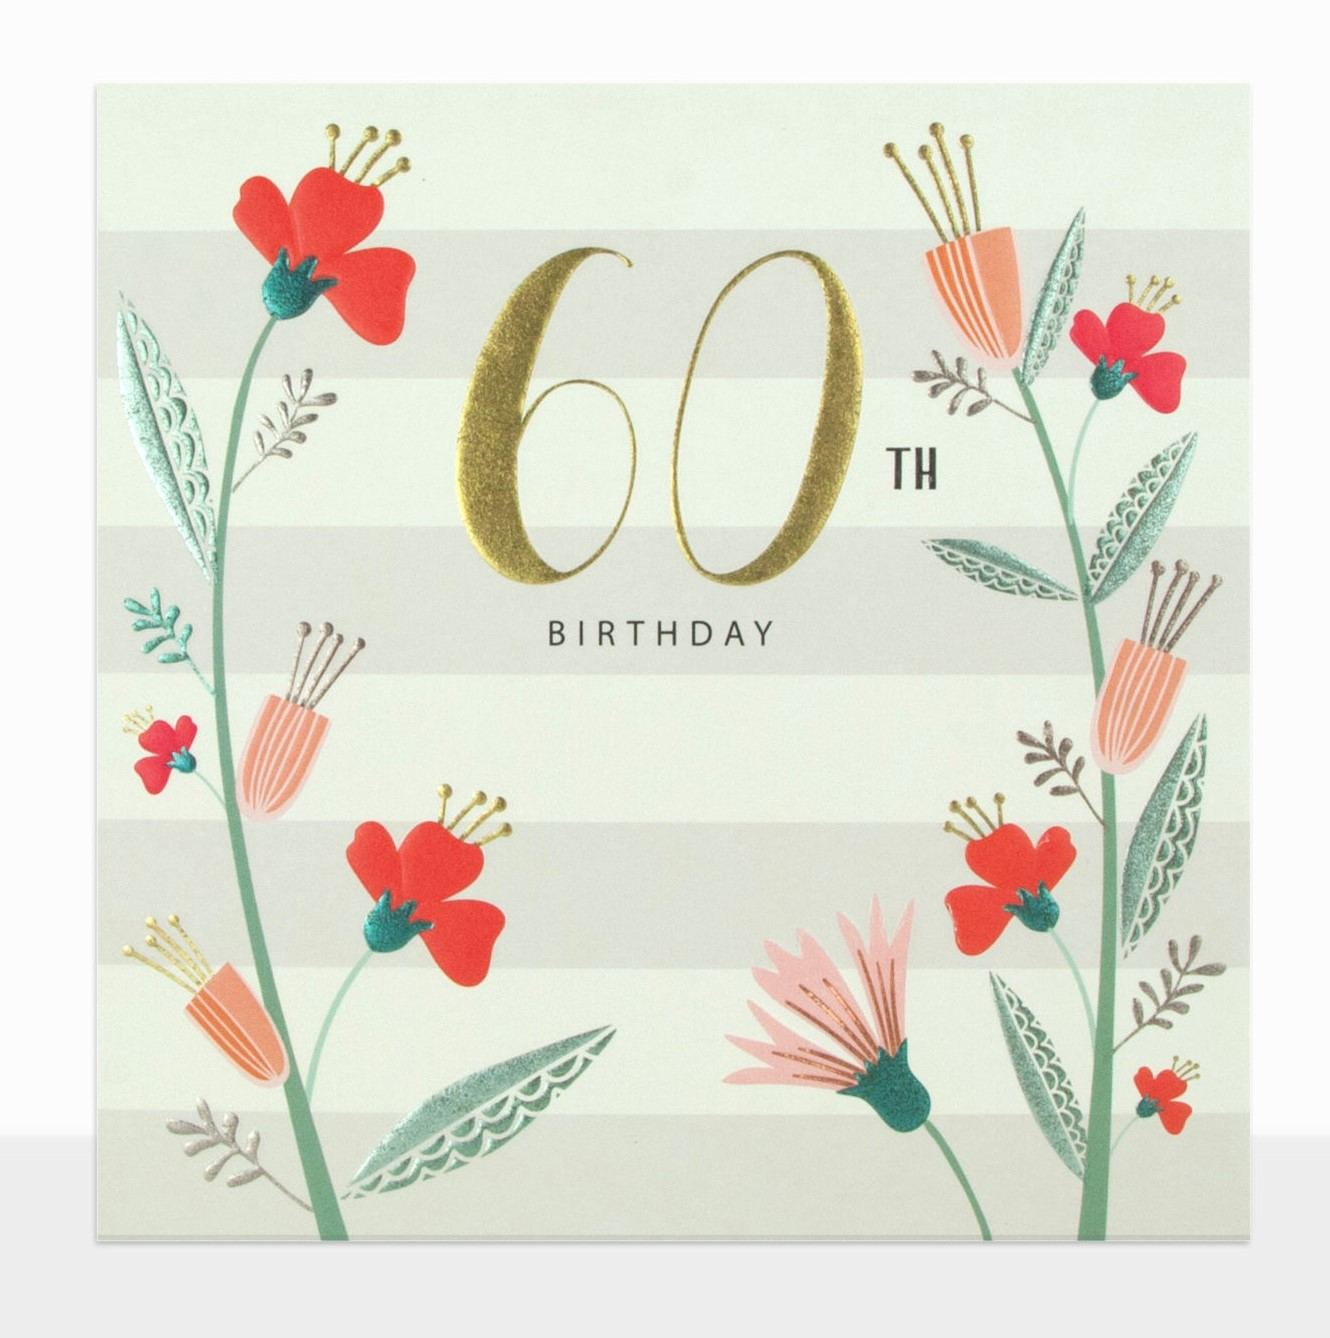 buy laura darrington birthday and occasion cards online 20% off promotion sale on birthday wedding anniversary baby special occasions cards